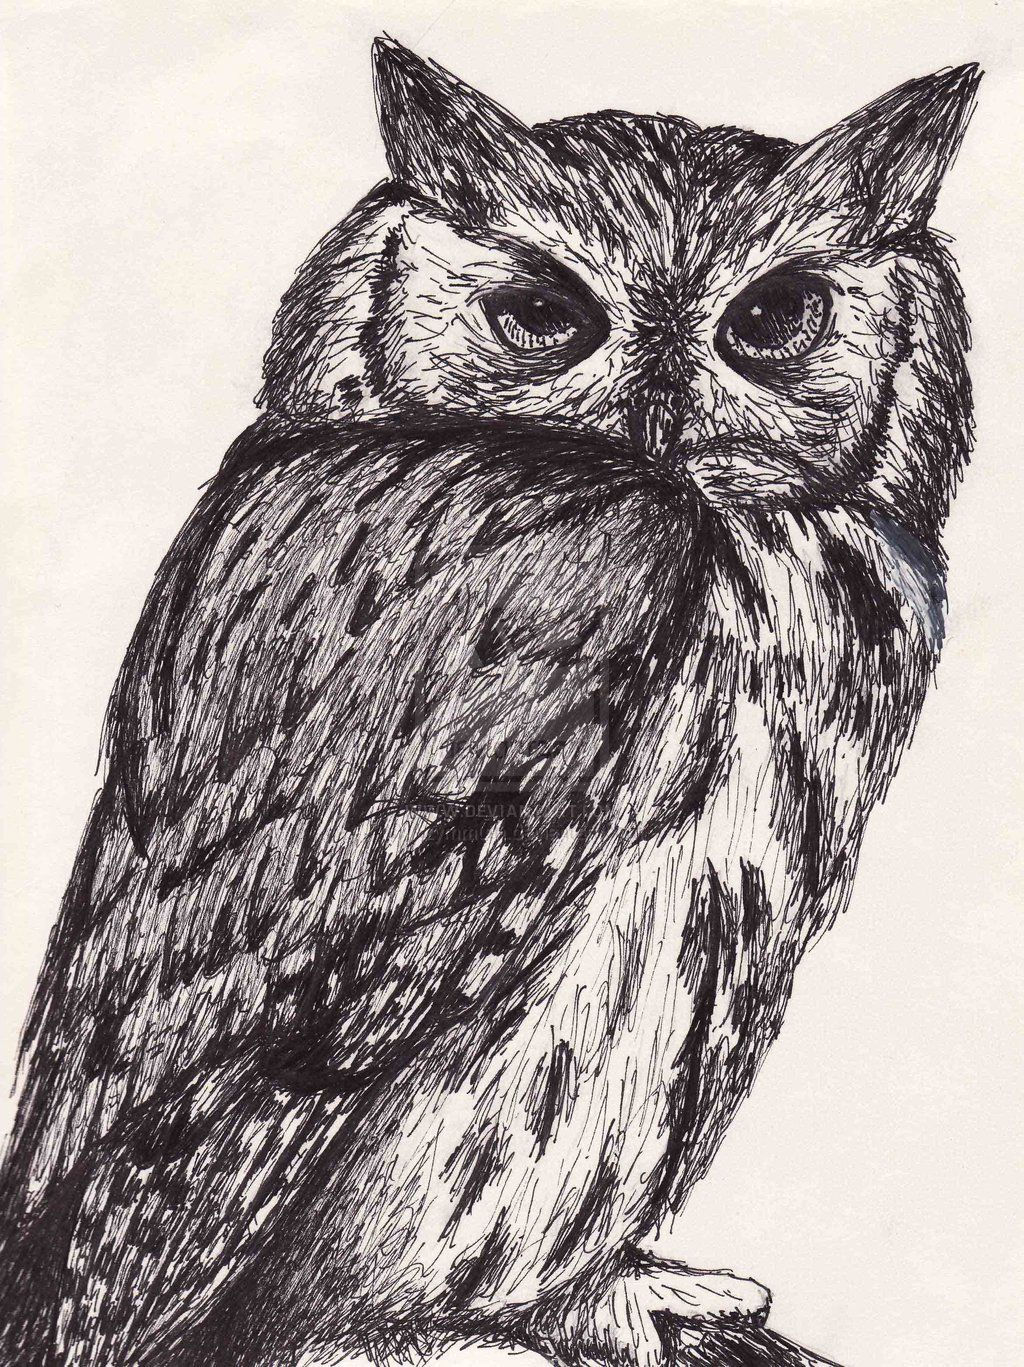 Animal Ink Drawings   Pen And Ink Drawings Of Animals Pen ...